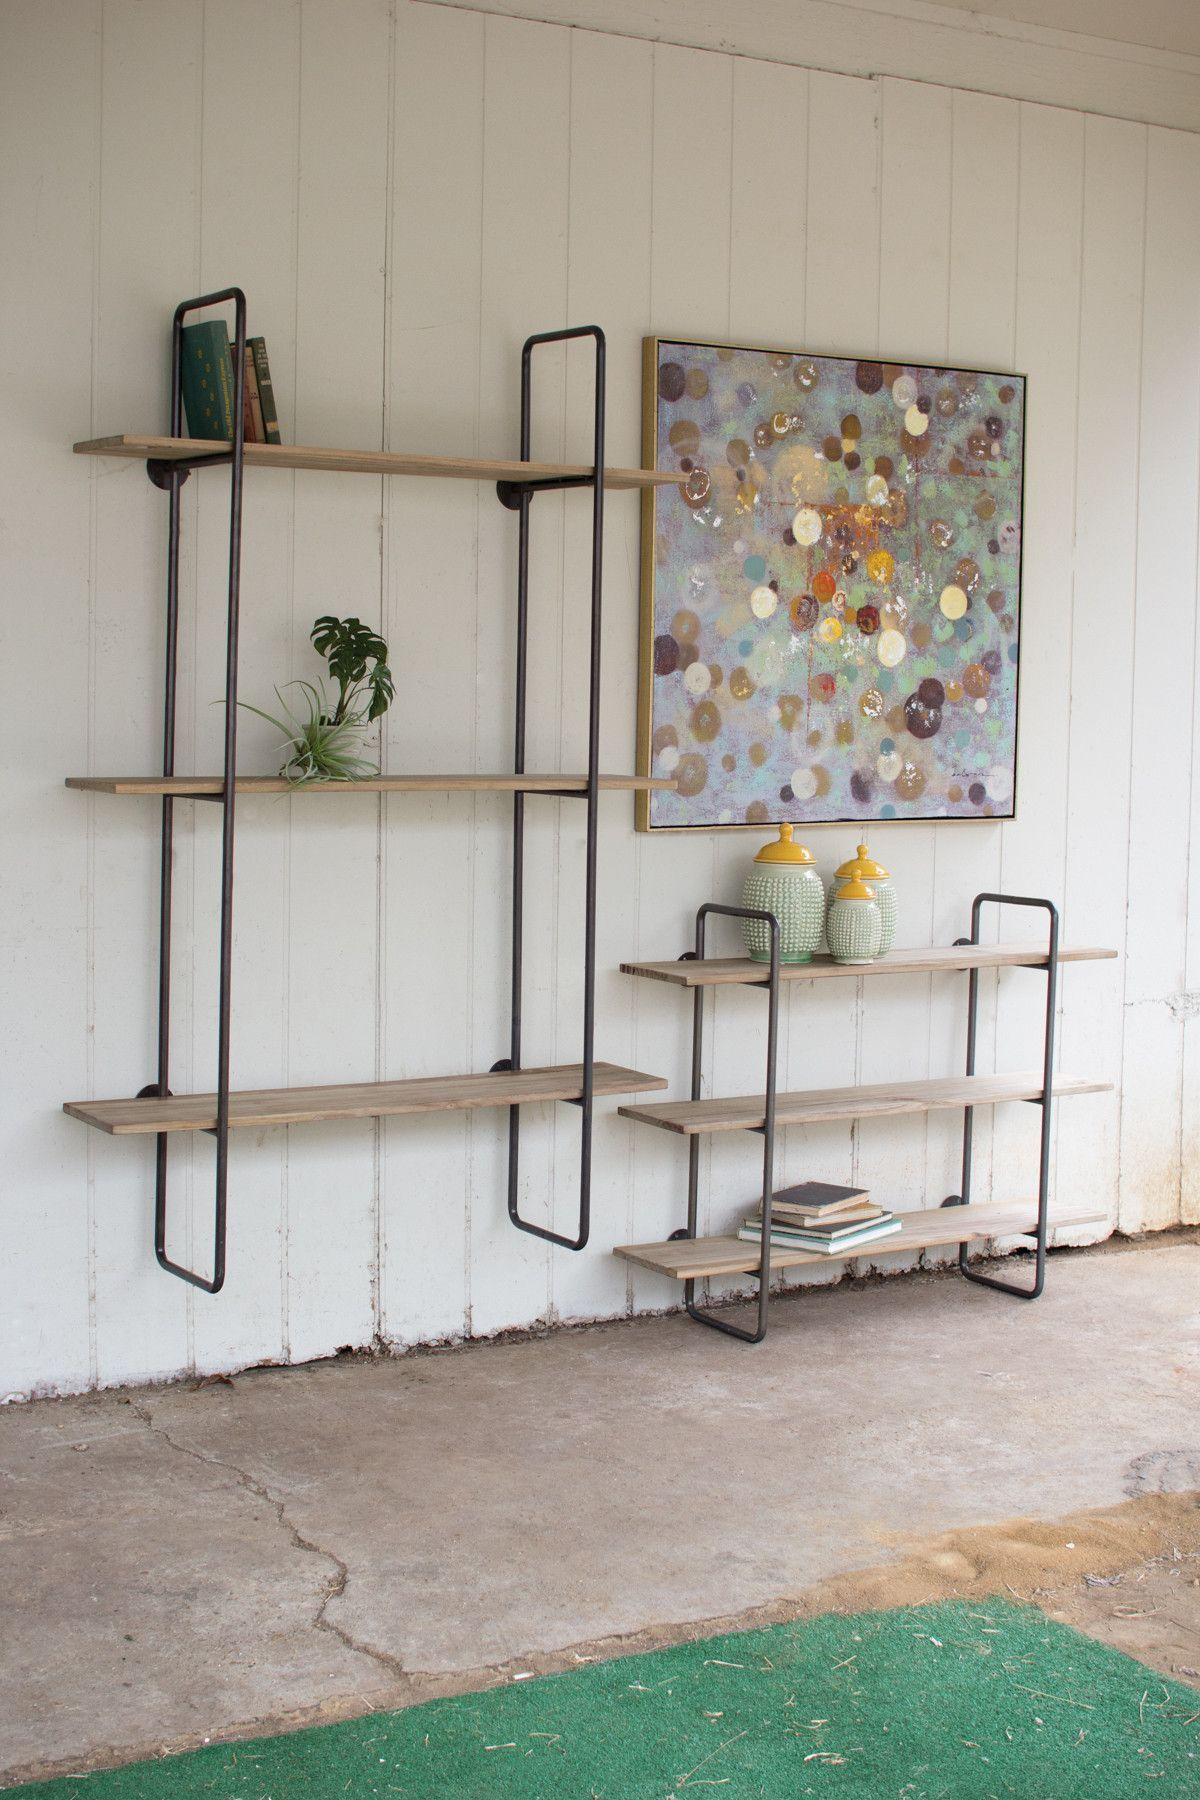 Large Industrial Metal And Wood Shelf 3 Shelves Frames On Wall Wood Shelving Units Wooden Shelves